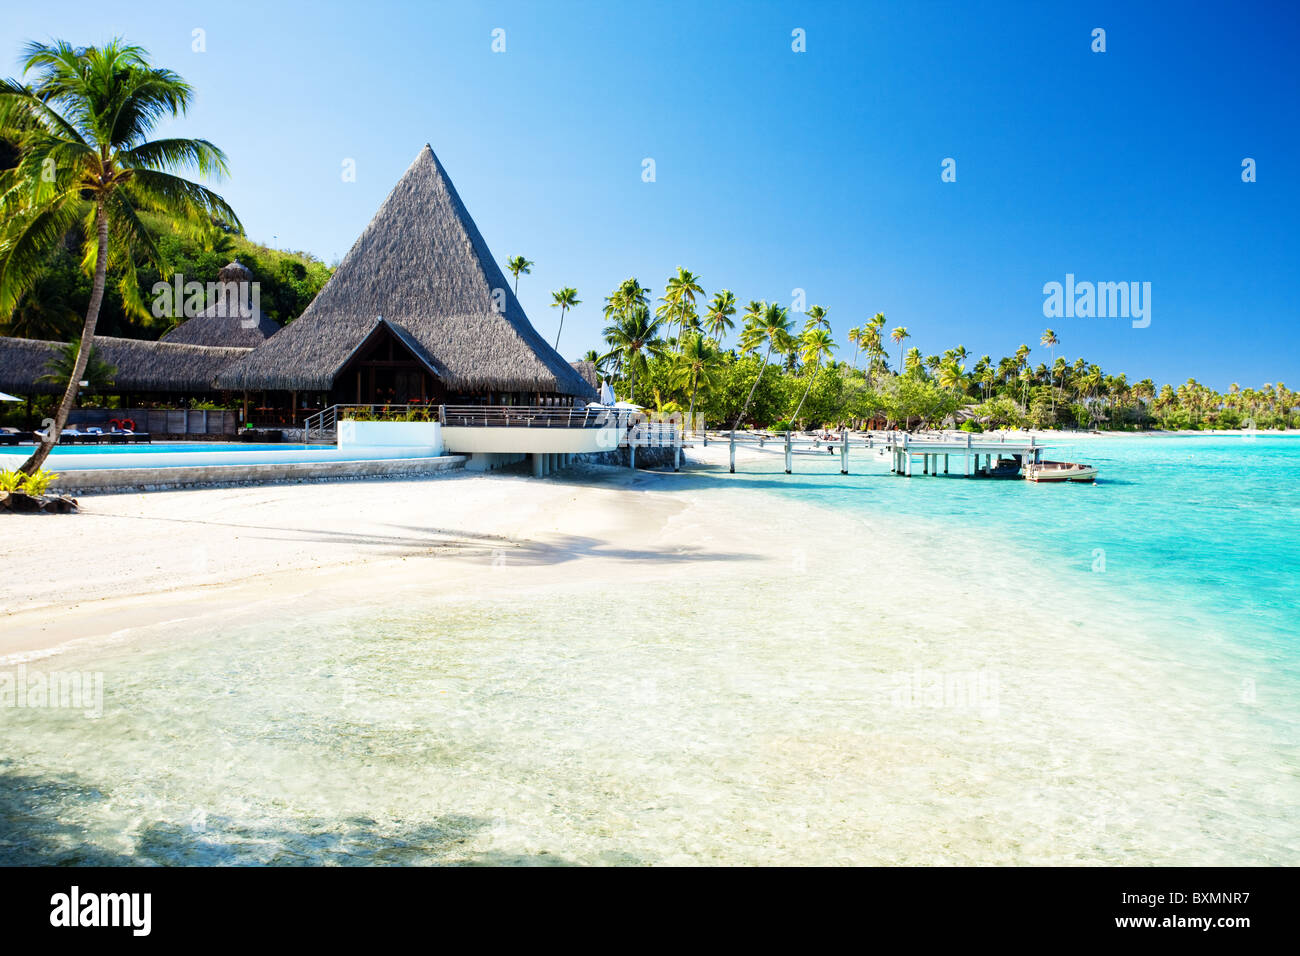 Little jetty and boat on tropical beach with amazing water - Stock Image